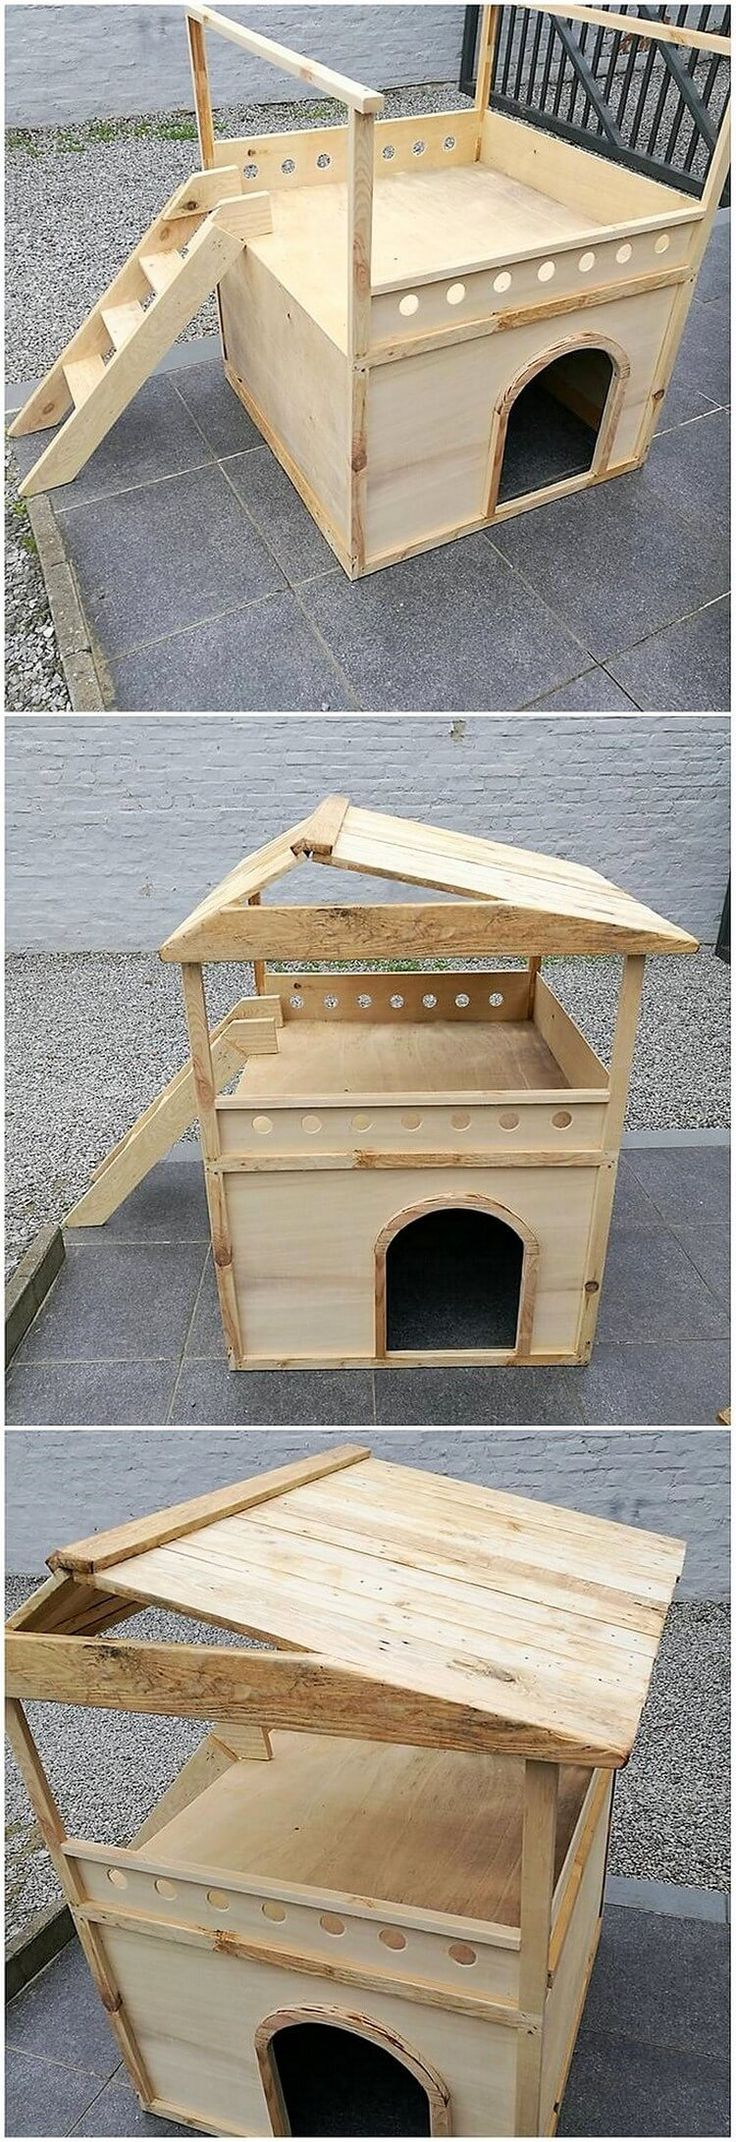 In this image we would highlight the idea of the wood pallet innovative pet house set which you will view in most of the house for the safety and relaxation of the pet animals. It is being beautifully designed in the hut shape of style where the top side of the project features the terrace portion.